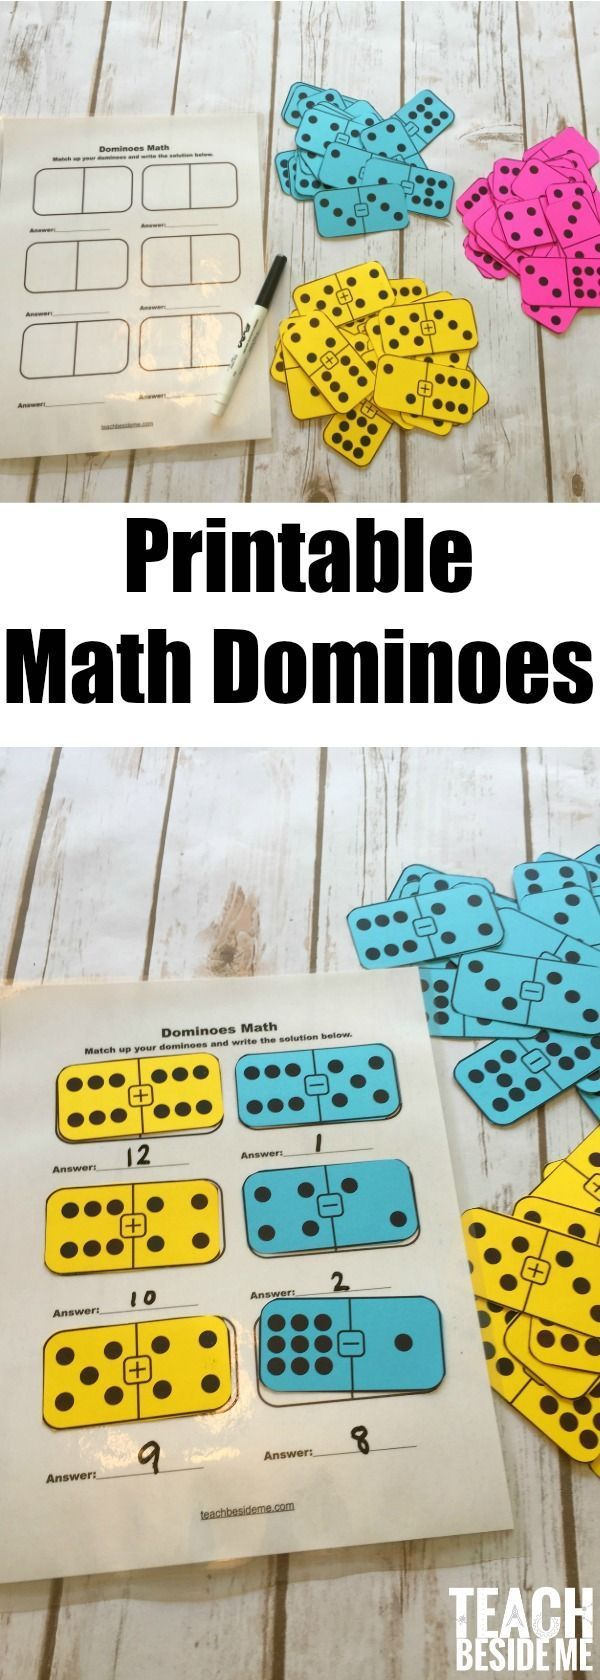 3643 best Math, Numbers images on Pinterest | Activities ...